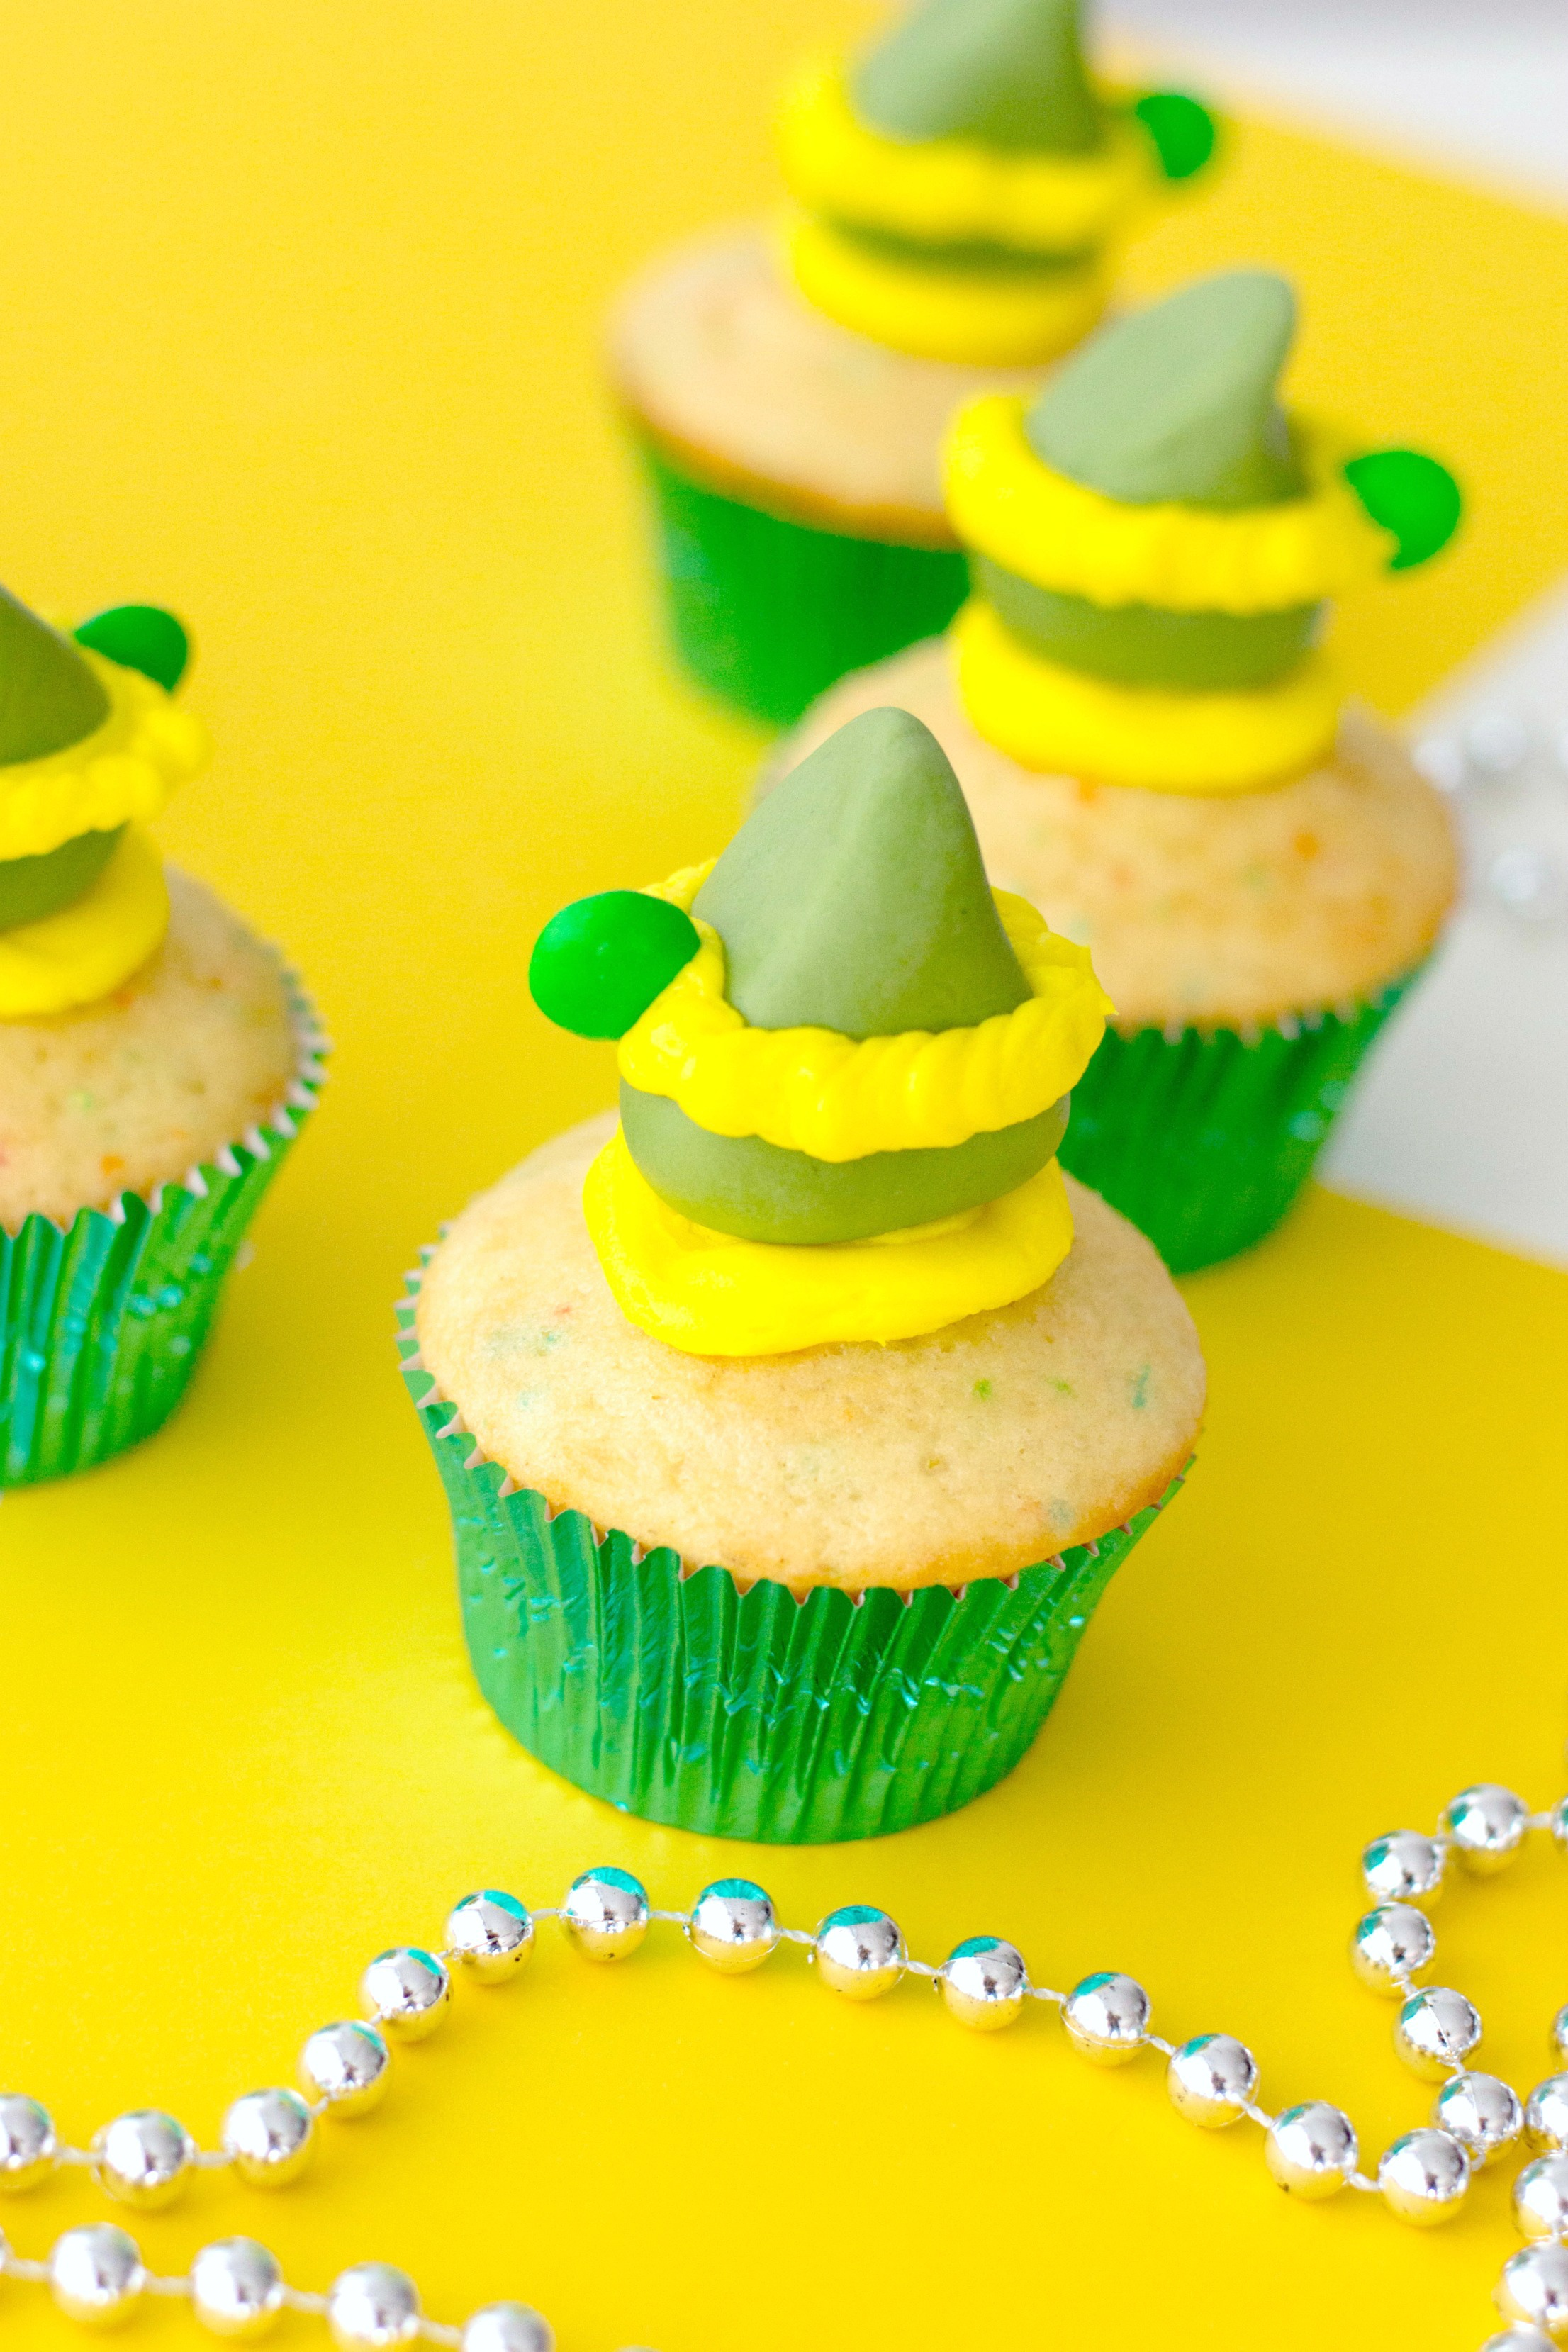 Buddy the Elf inspired funfetti cupcakes on a yellow table with silver garland.